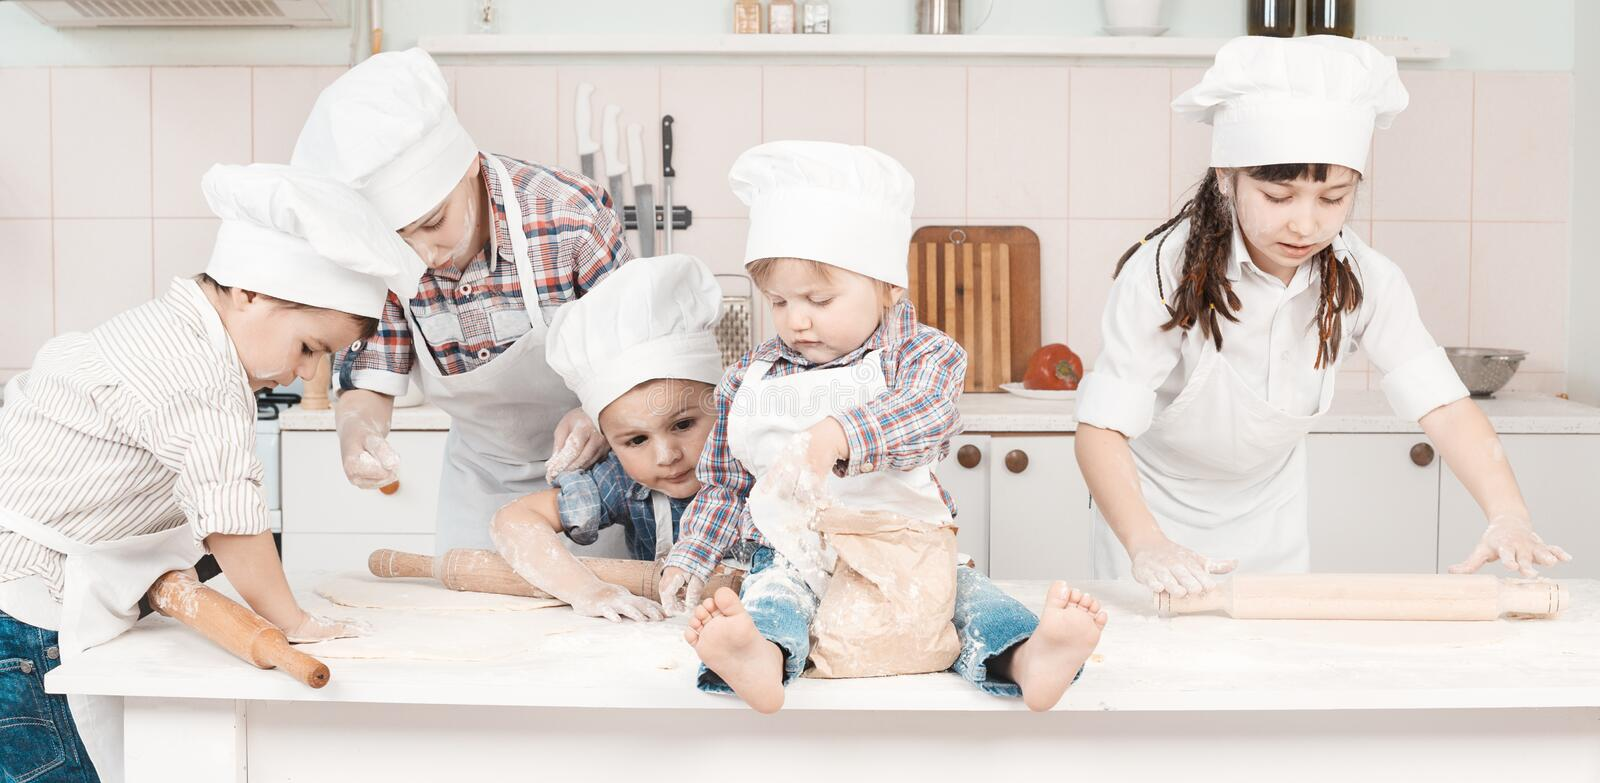 Download Happy Little Chefs Preparing Dough In The Kitchen Stock Photo - Image of child, cookies: 31085802